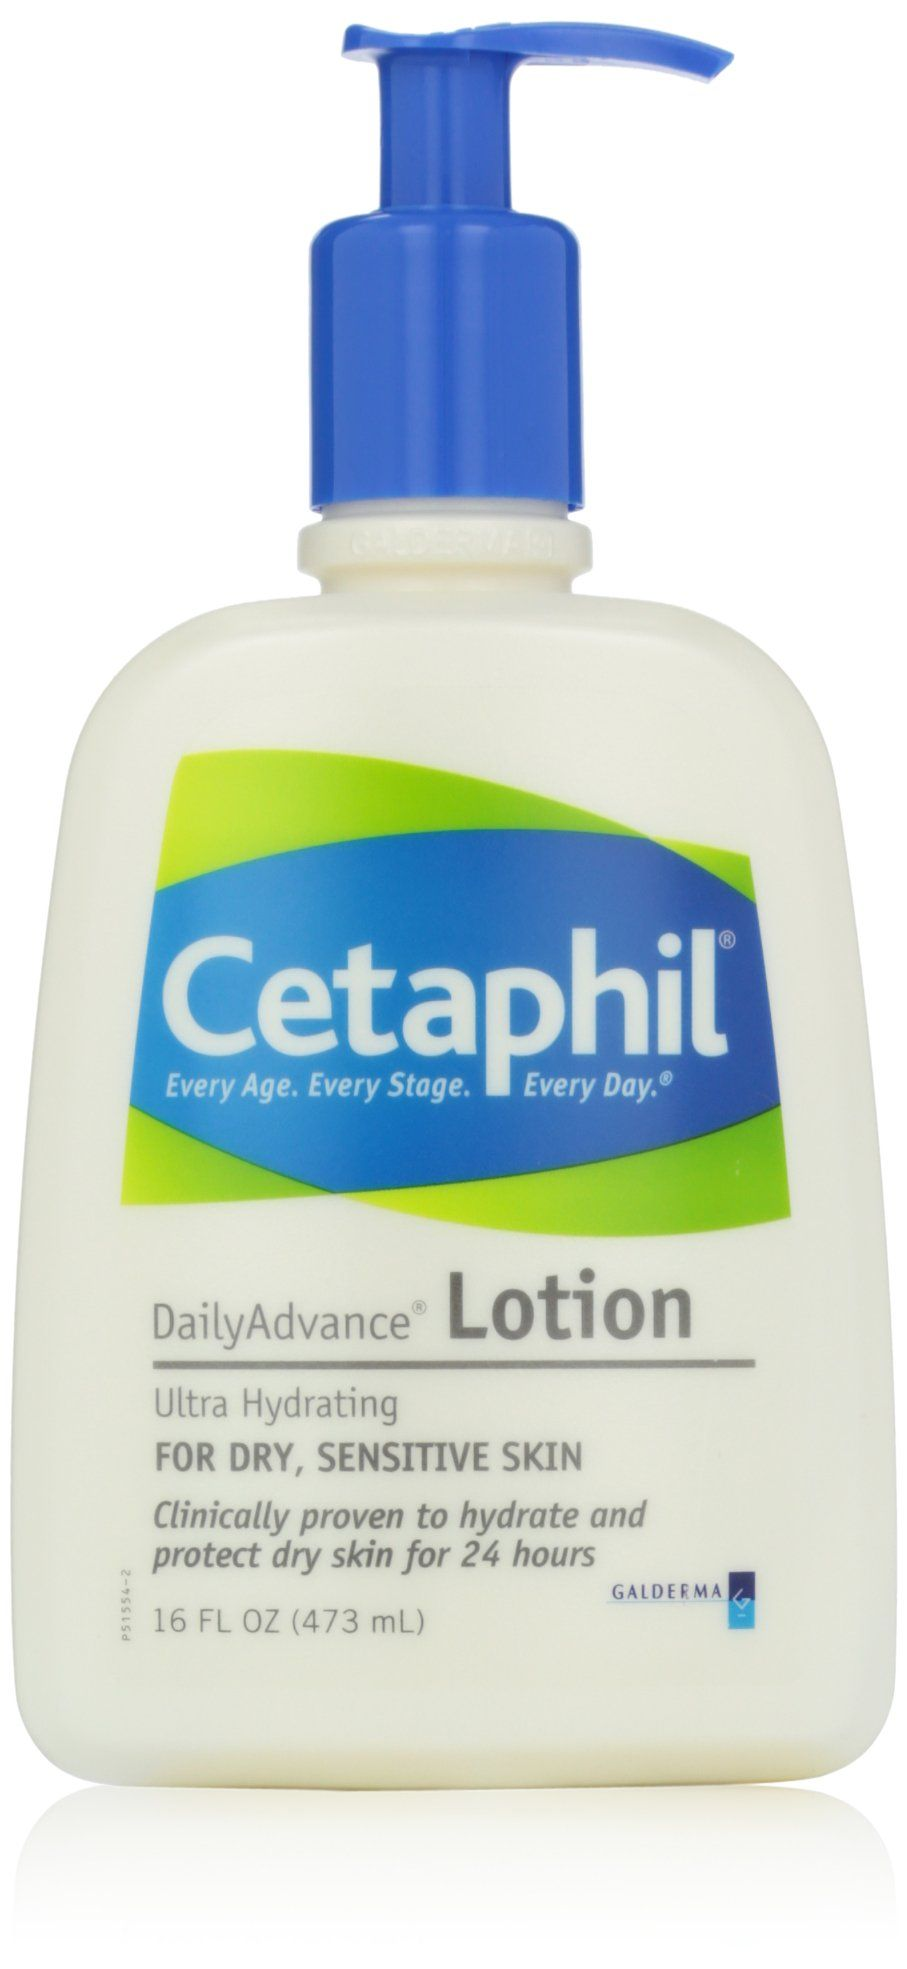 In the winter, I put this on my face/neck after all that